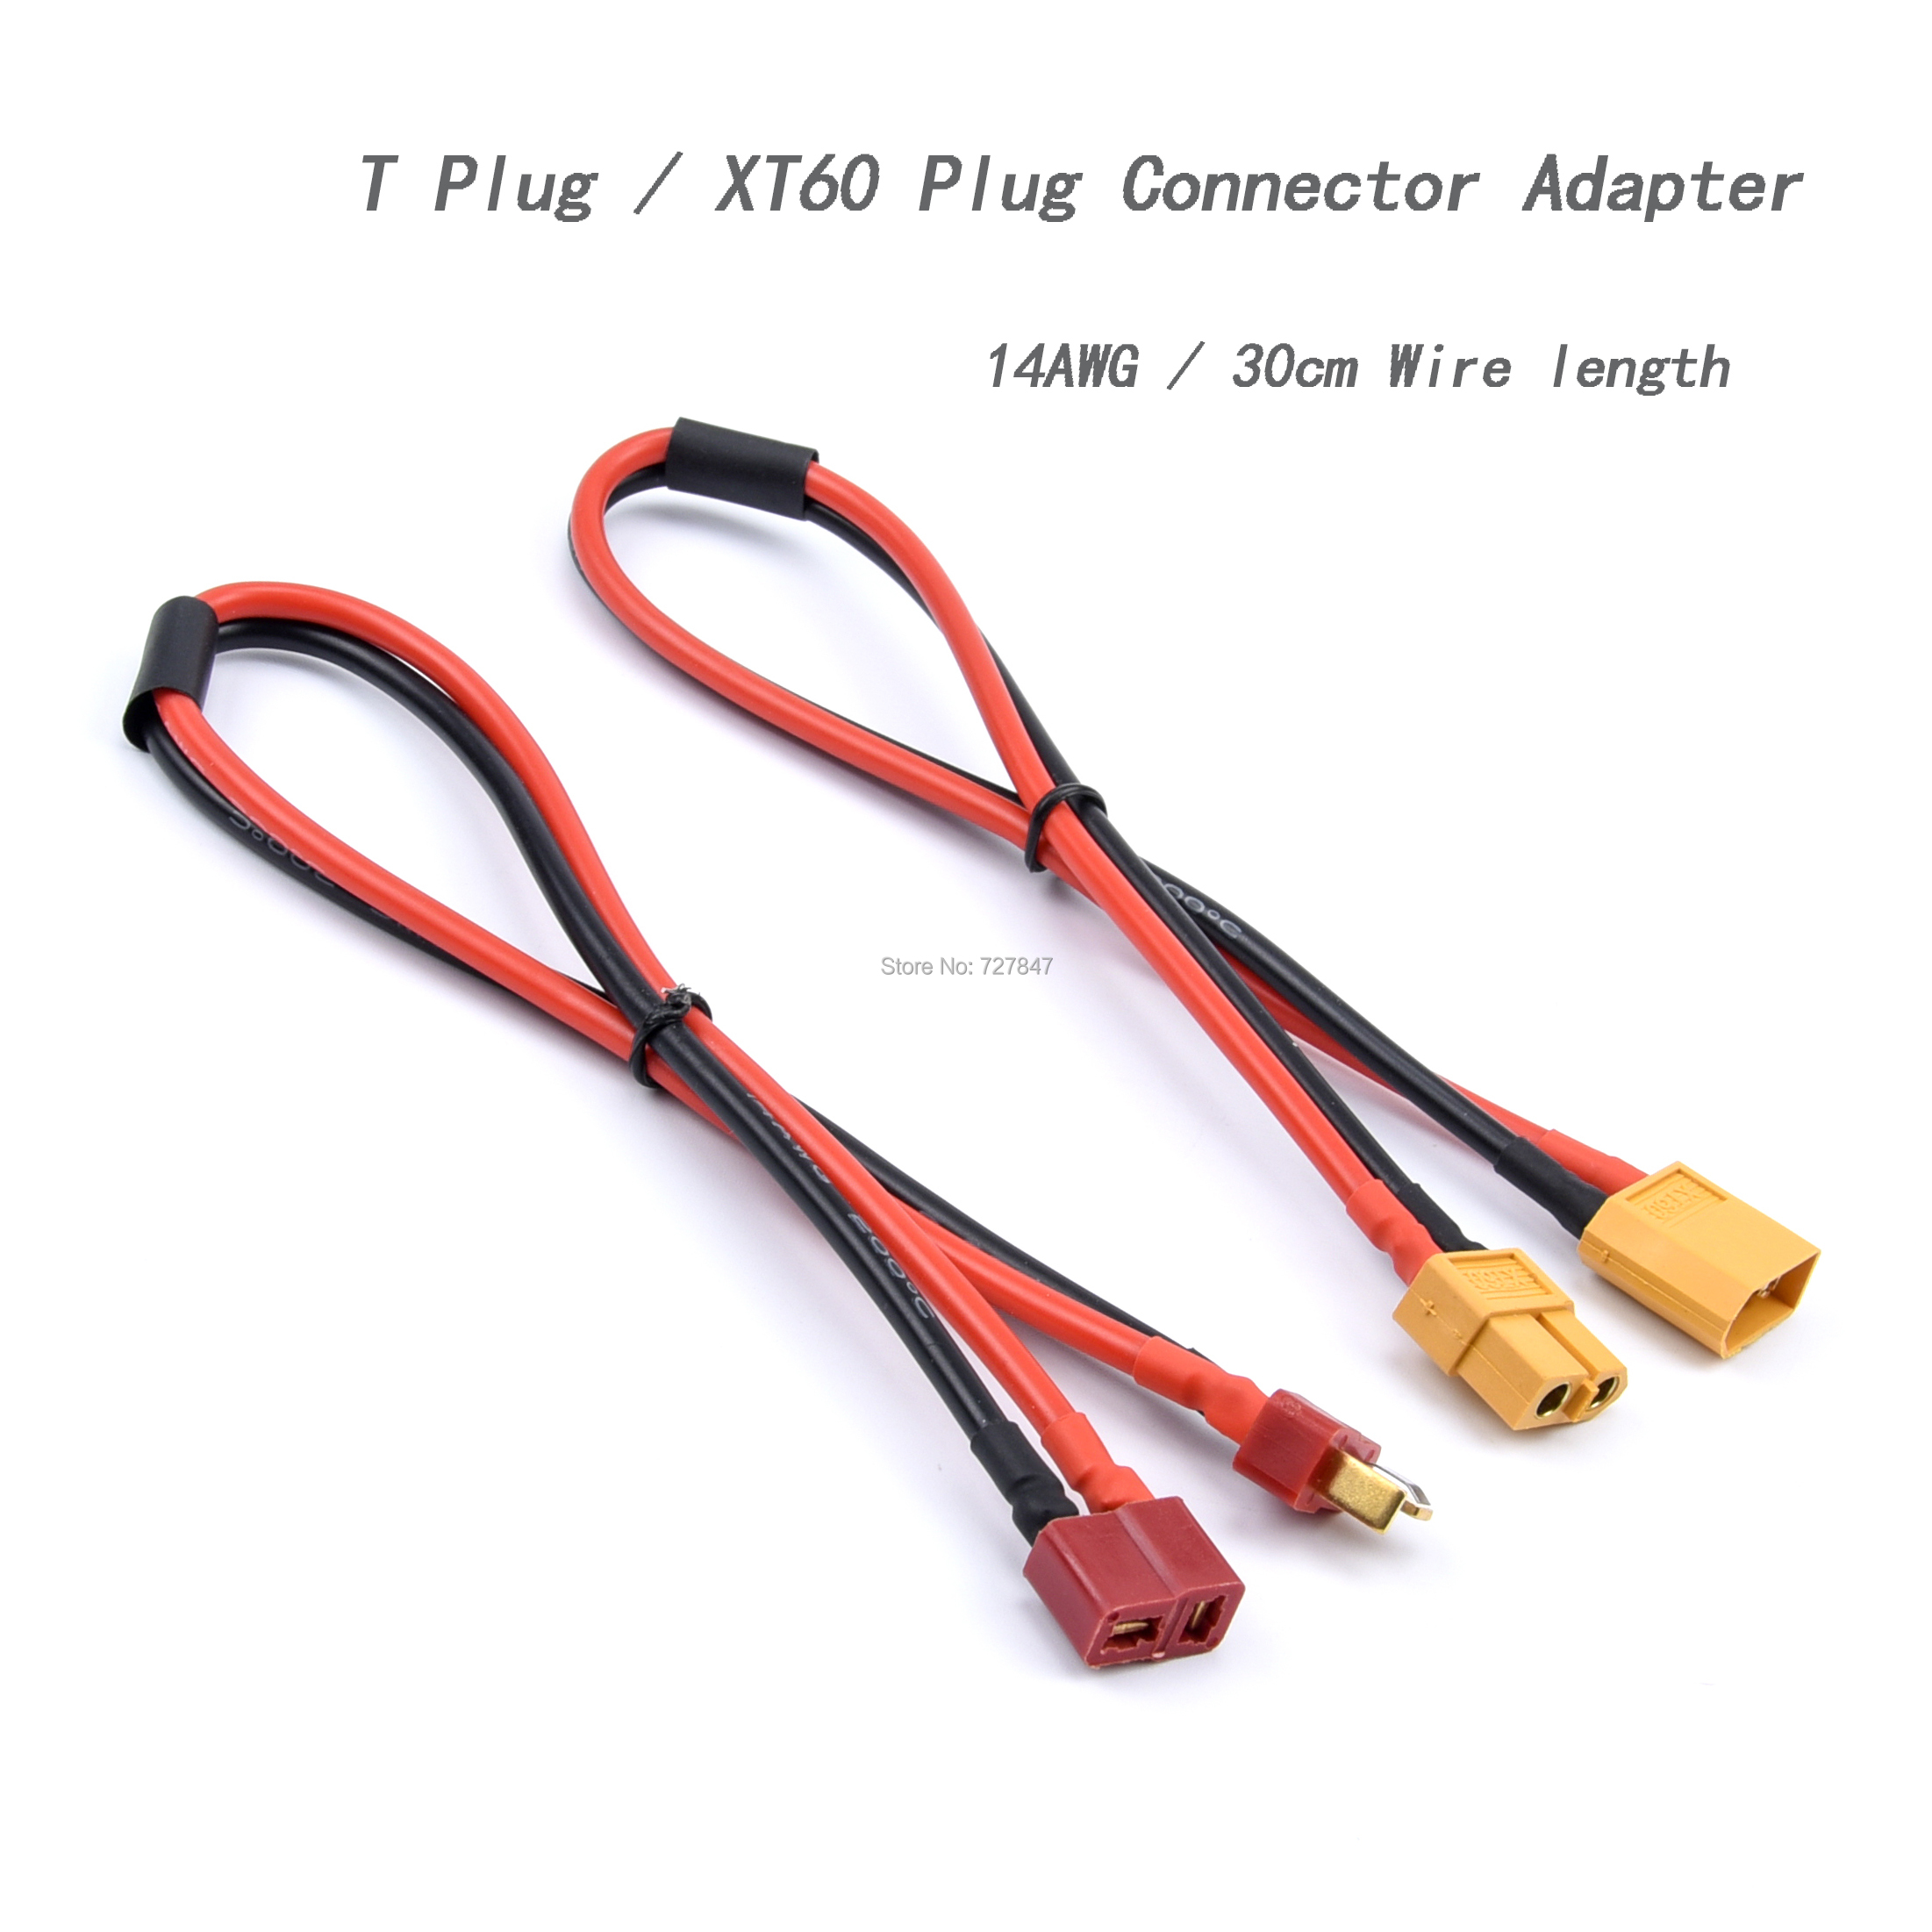 FPV XT60 / T Plug Female Male Connector Adapter 14AWG 300mm 30cm Extension Cable Leads Adapter For RC Lipo Batter